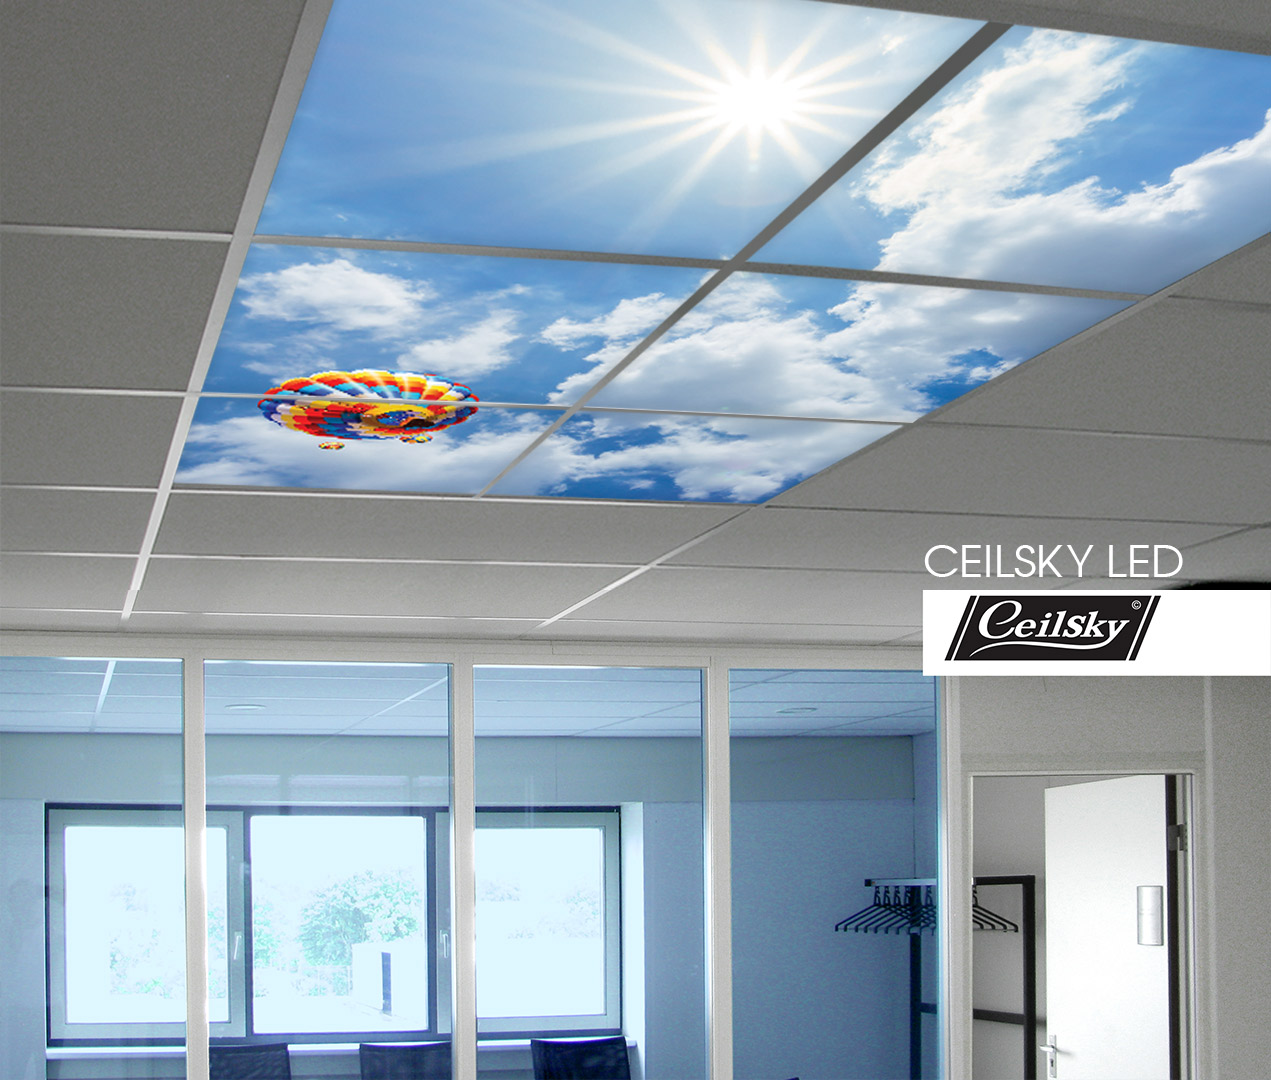 Systeemplafond Led Verlichting Ceilsky Led Fotoplafond In Systeemplafond Wolkenplafond Met Led